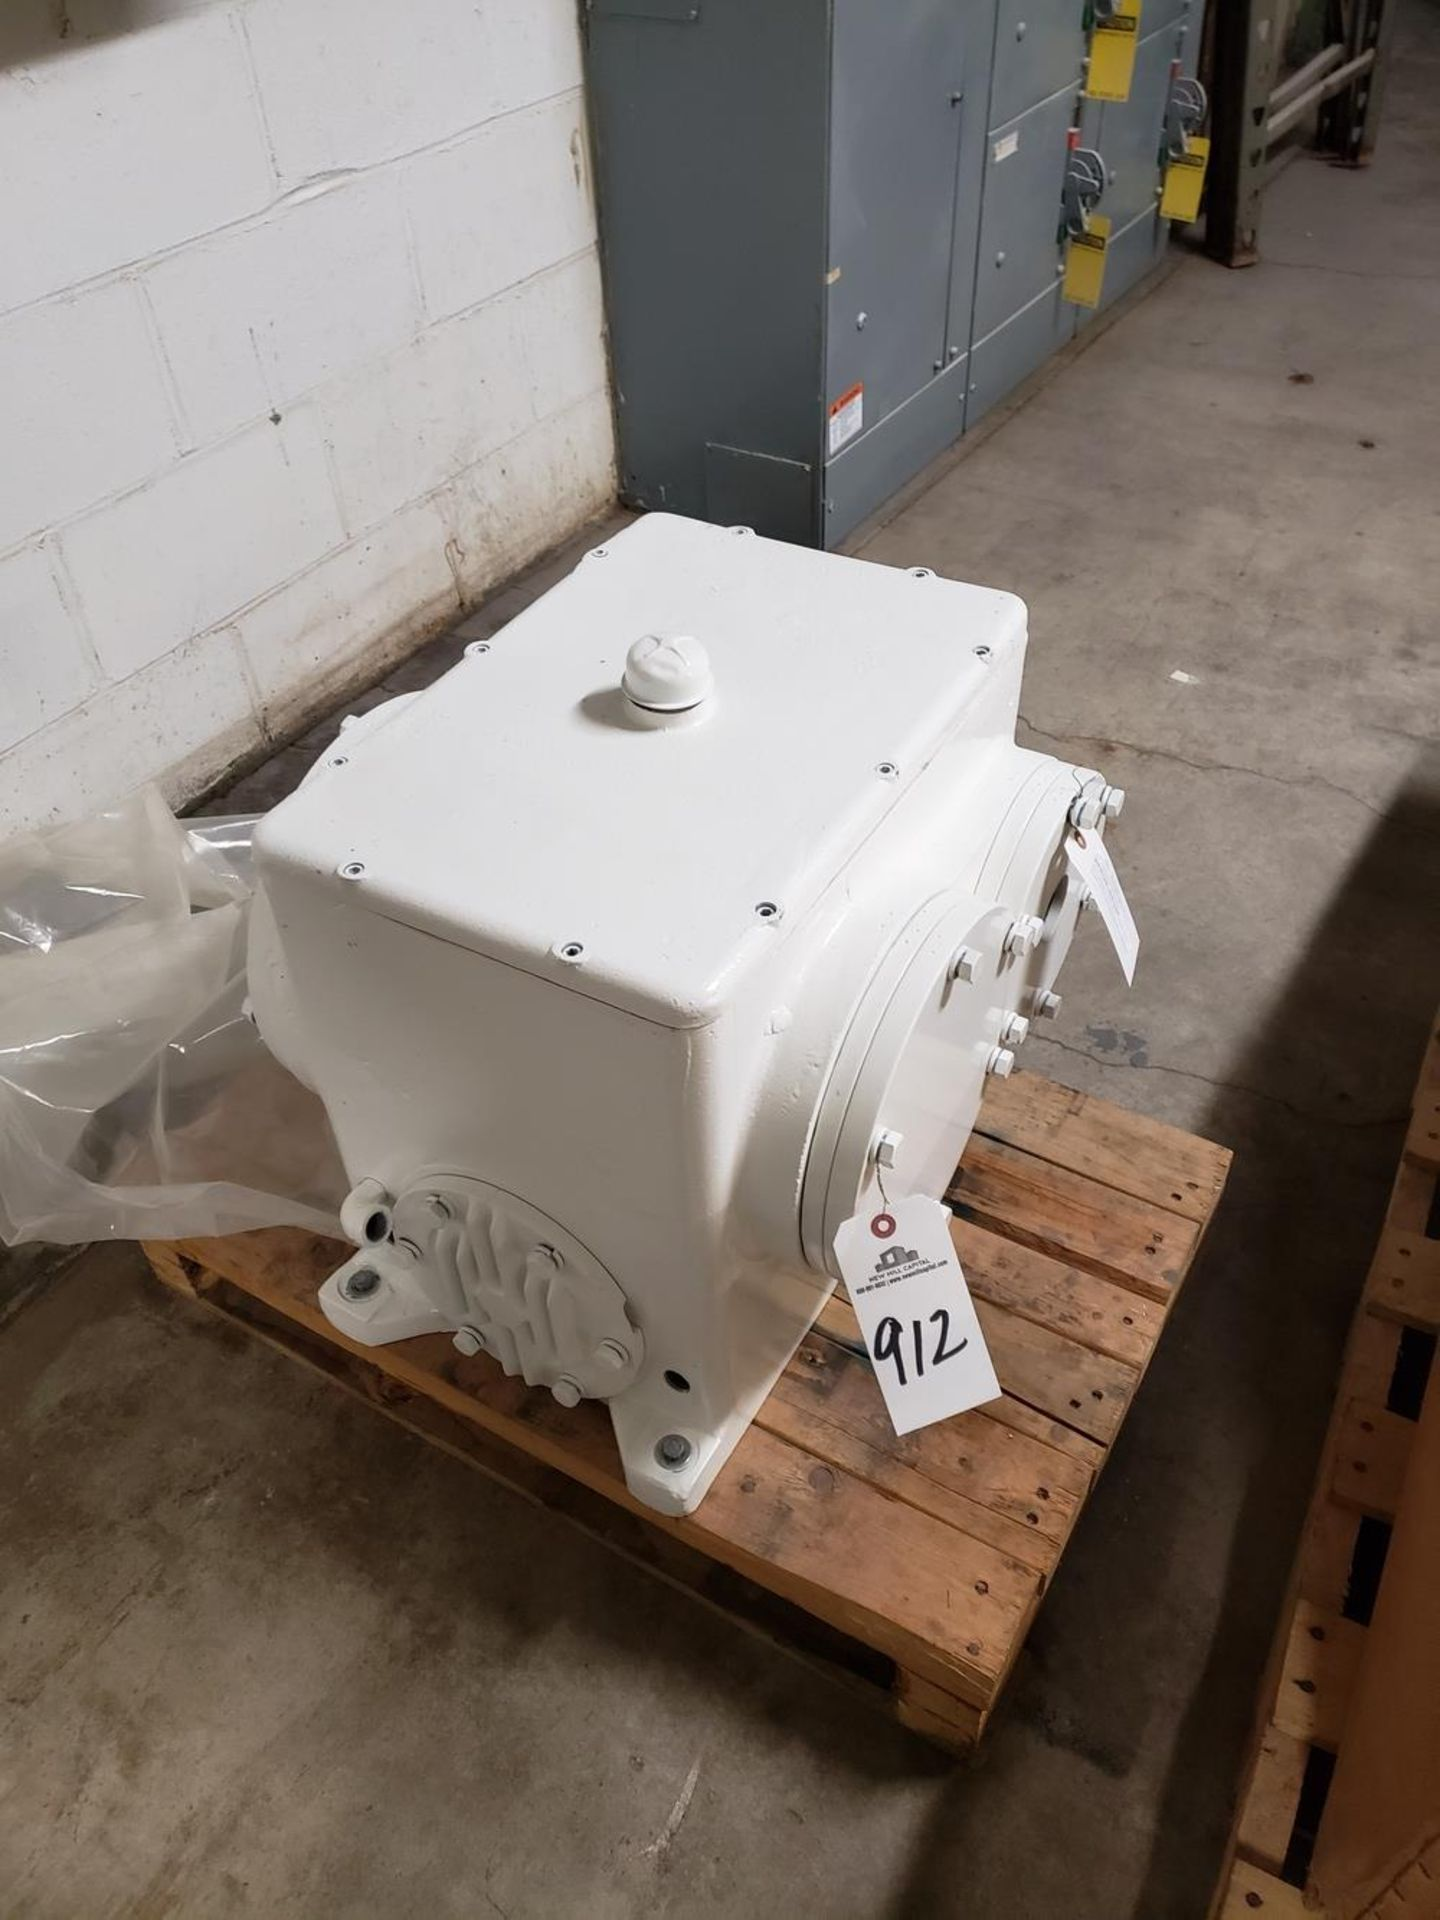 Lot 912 - Rice Roll Reducer - Subject to Bulk Bid Lot 884B -The Greater of the Aggregate Sum | Rig Fee: $75